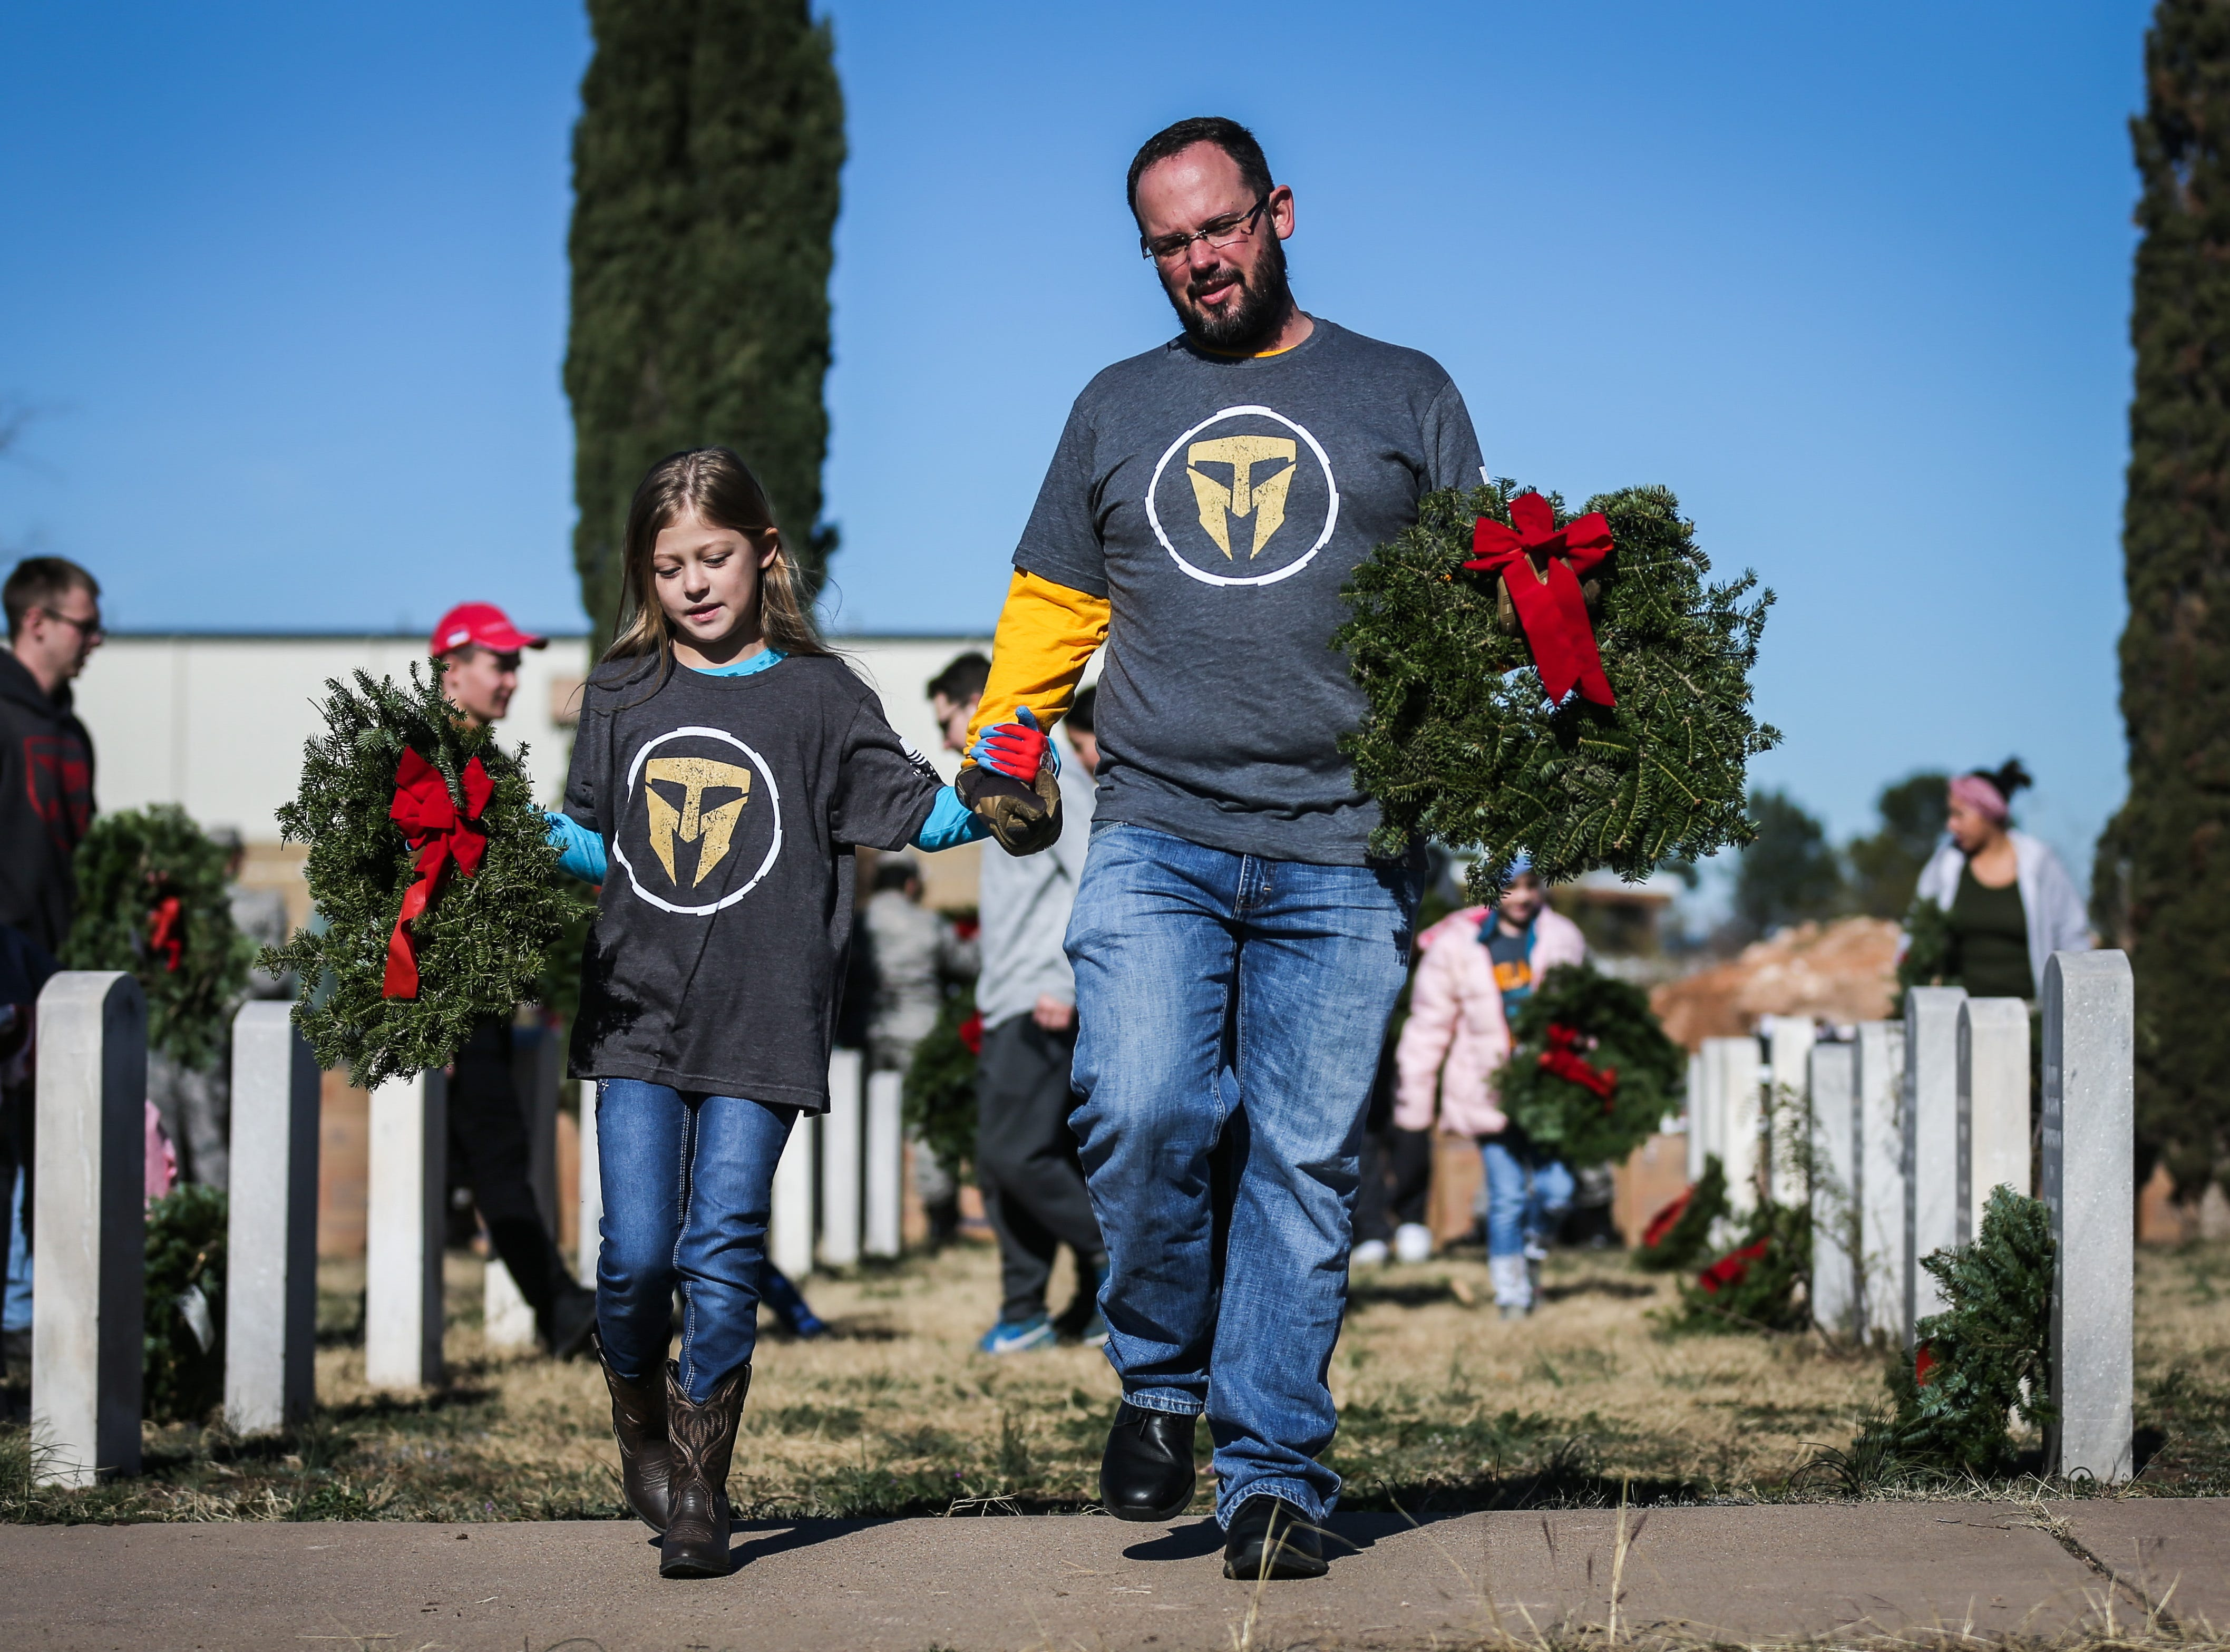 Justin Bancroft and Lyla Bancroft, 9, carry wreaths to place on graves during Wreaths Across America Saturday, Dec. 15, 2018, at Belvedere Memorial Park.